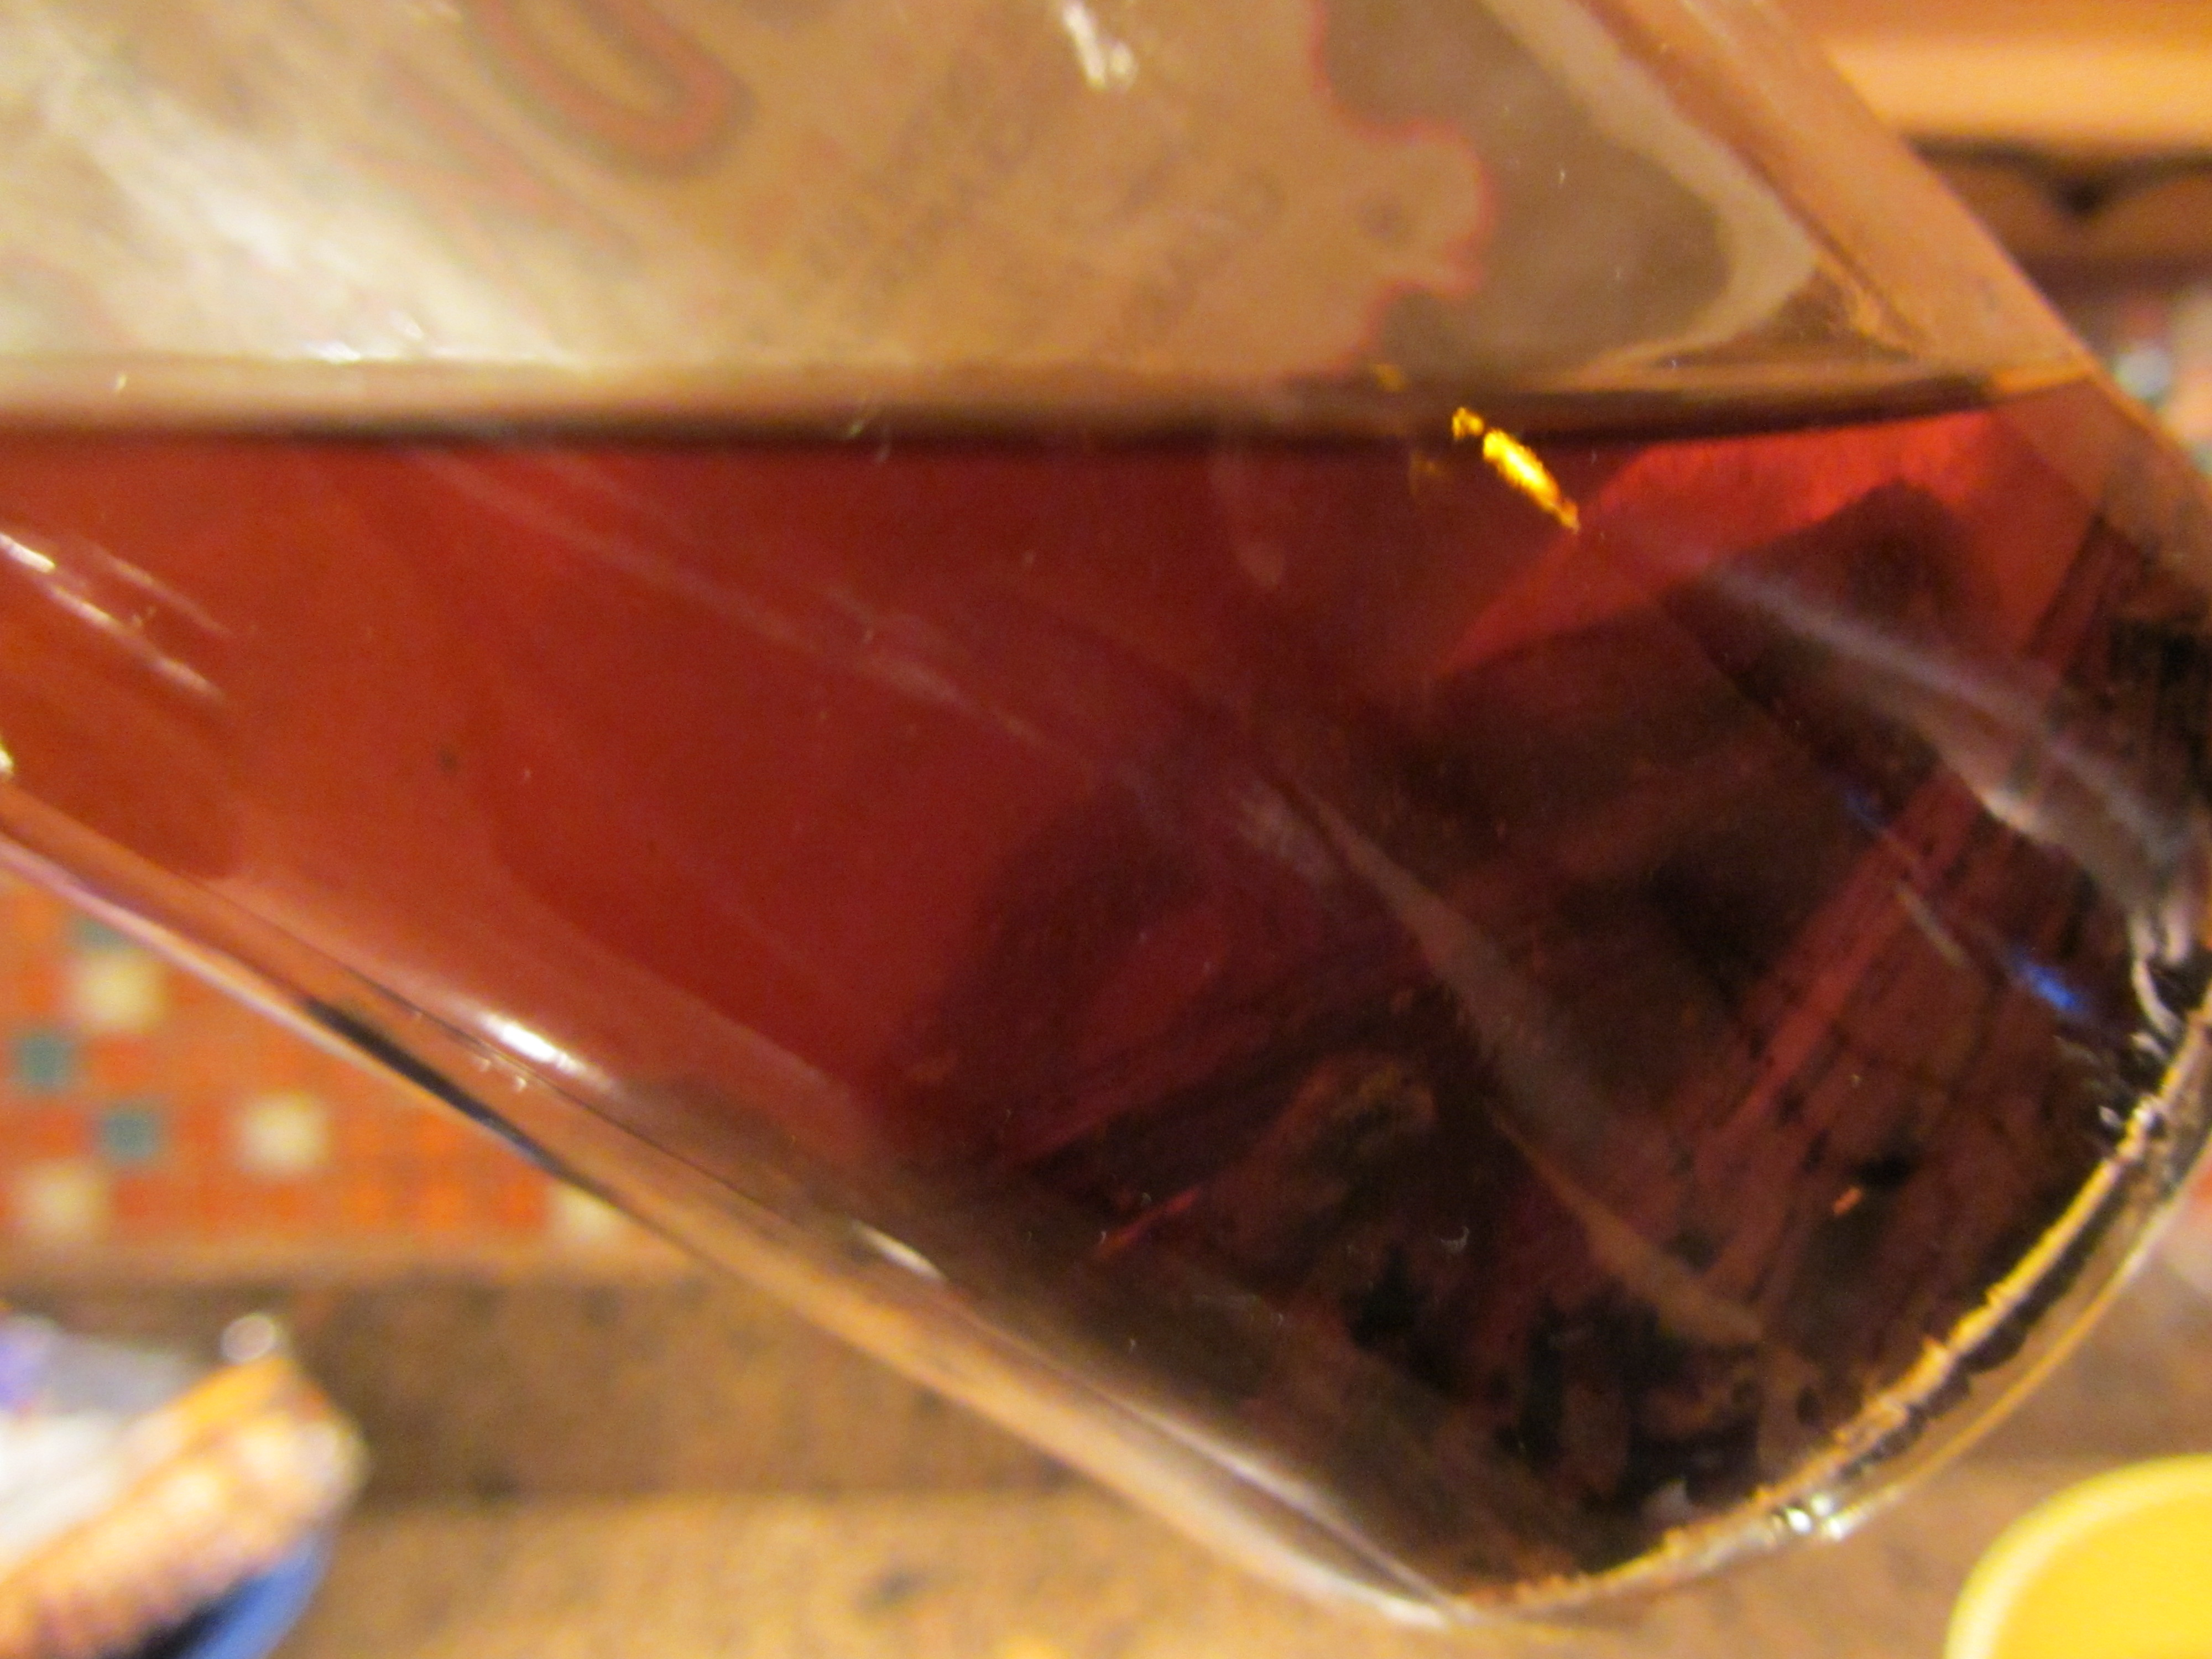 Pantry Recipe: Make Your Own Vanilla Extract